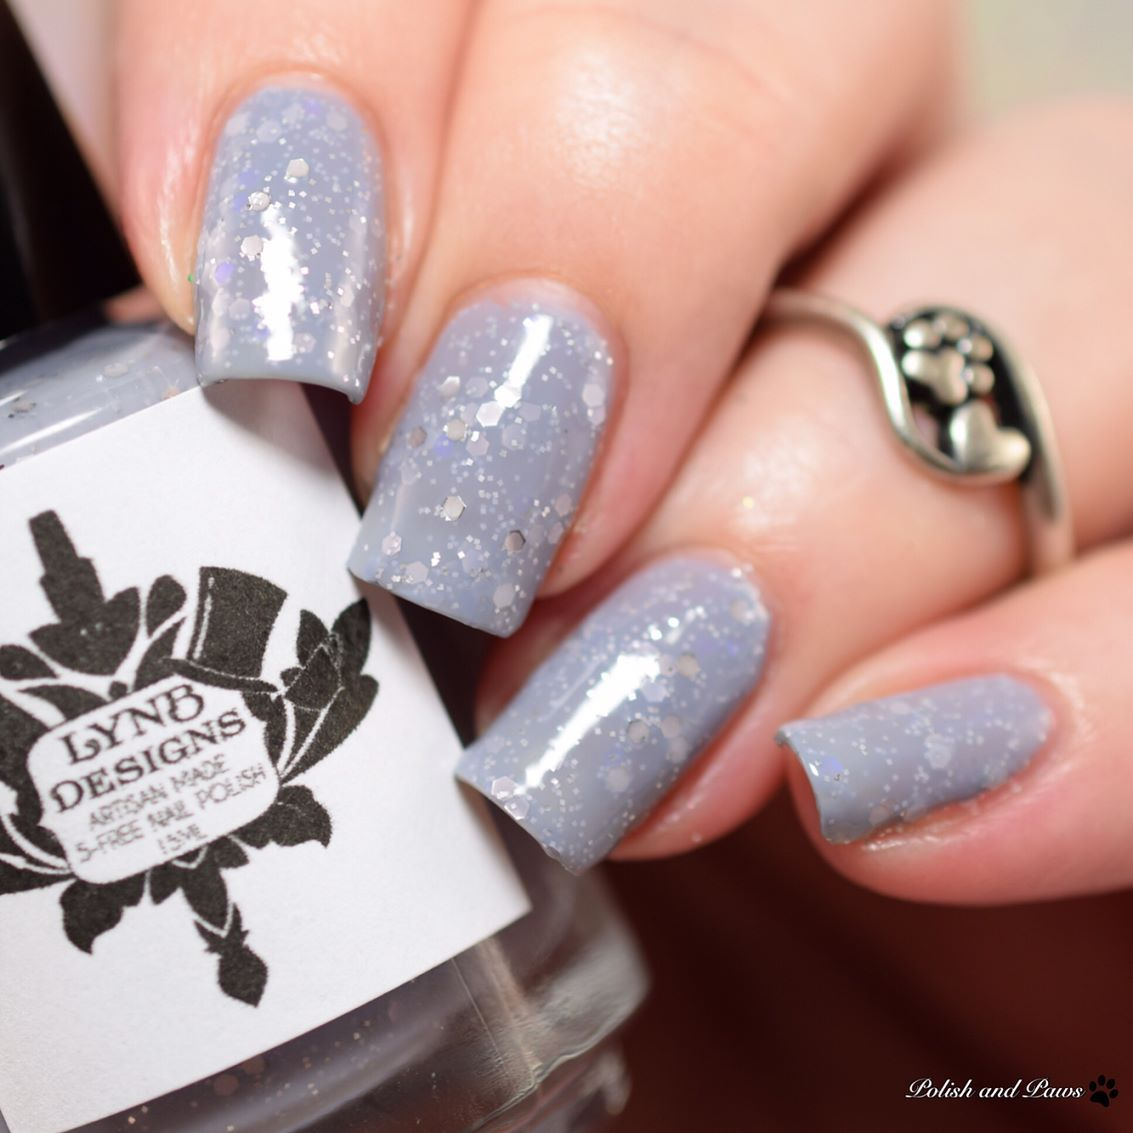 Littlefoot by @lynbdesigns is a purple toned grey crelly base with ...